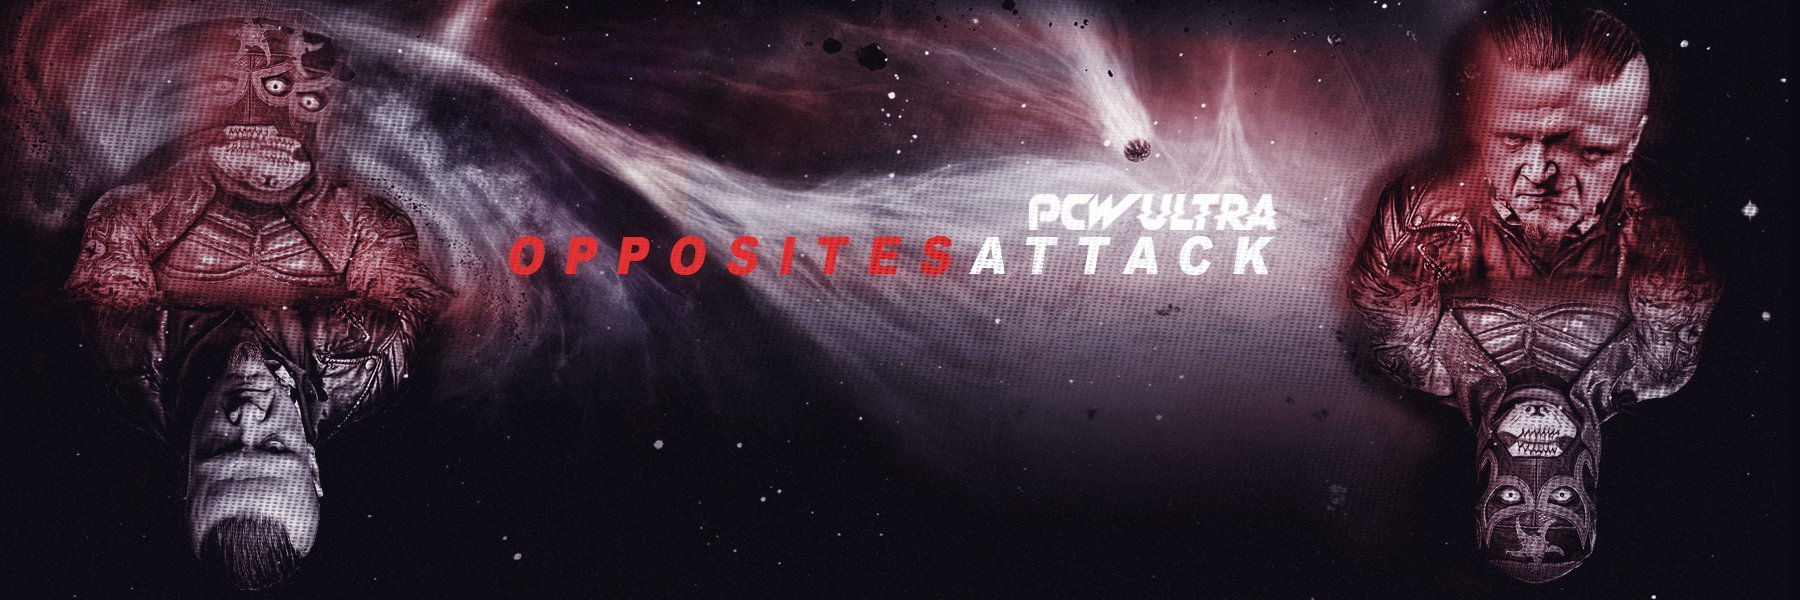 PCW ULTRA | OPPOSITES ATTACK: Subscribe $4.99mo. // Rent $2.99 // Buy $9.99